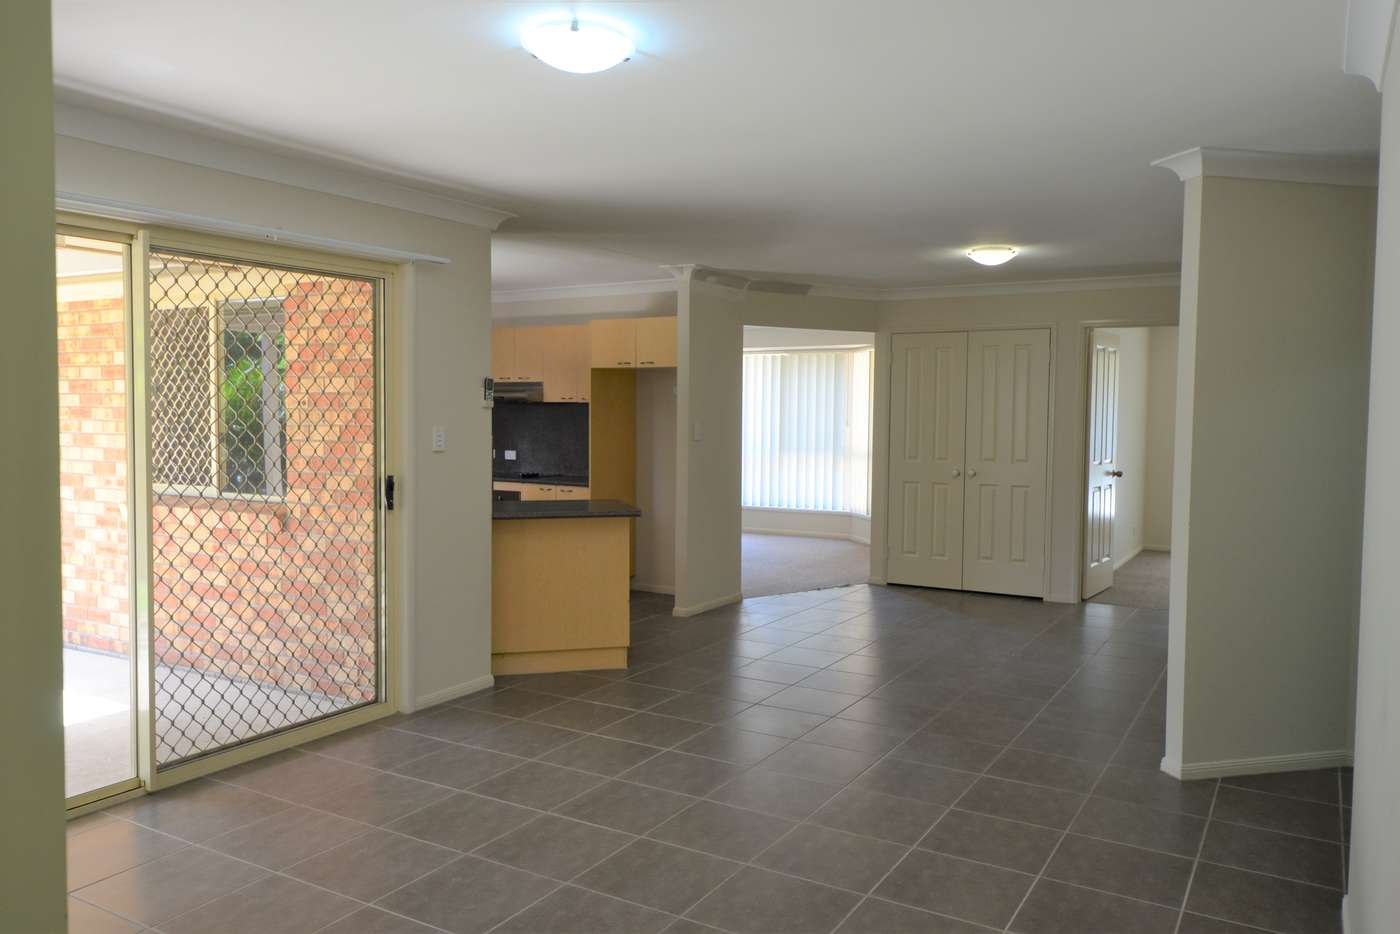 Sixth view of Homely house listing, 50 Vicki Street, Redbank Plains QLD 4301